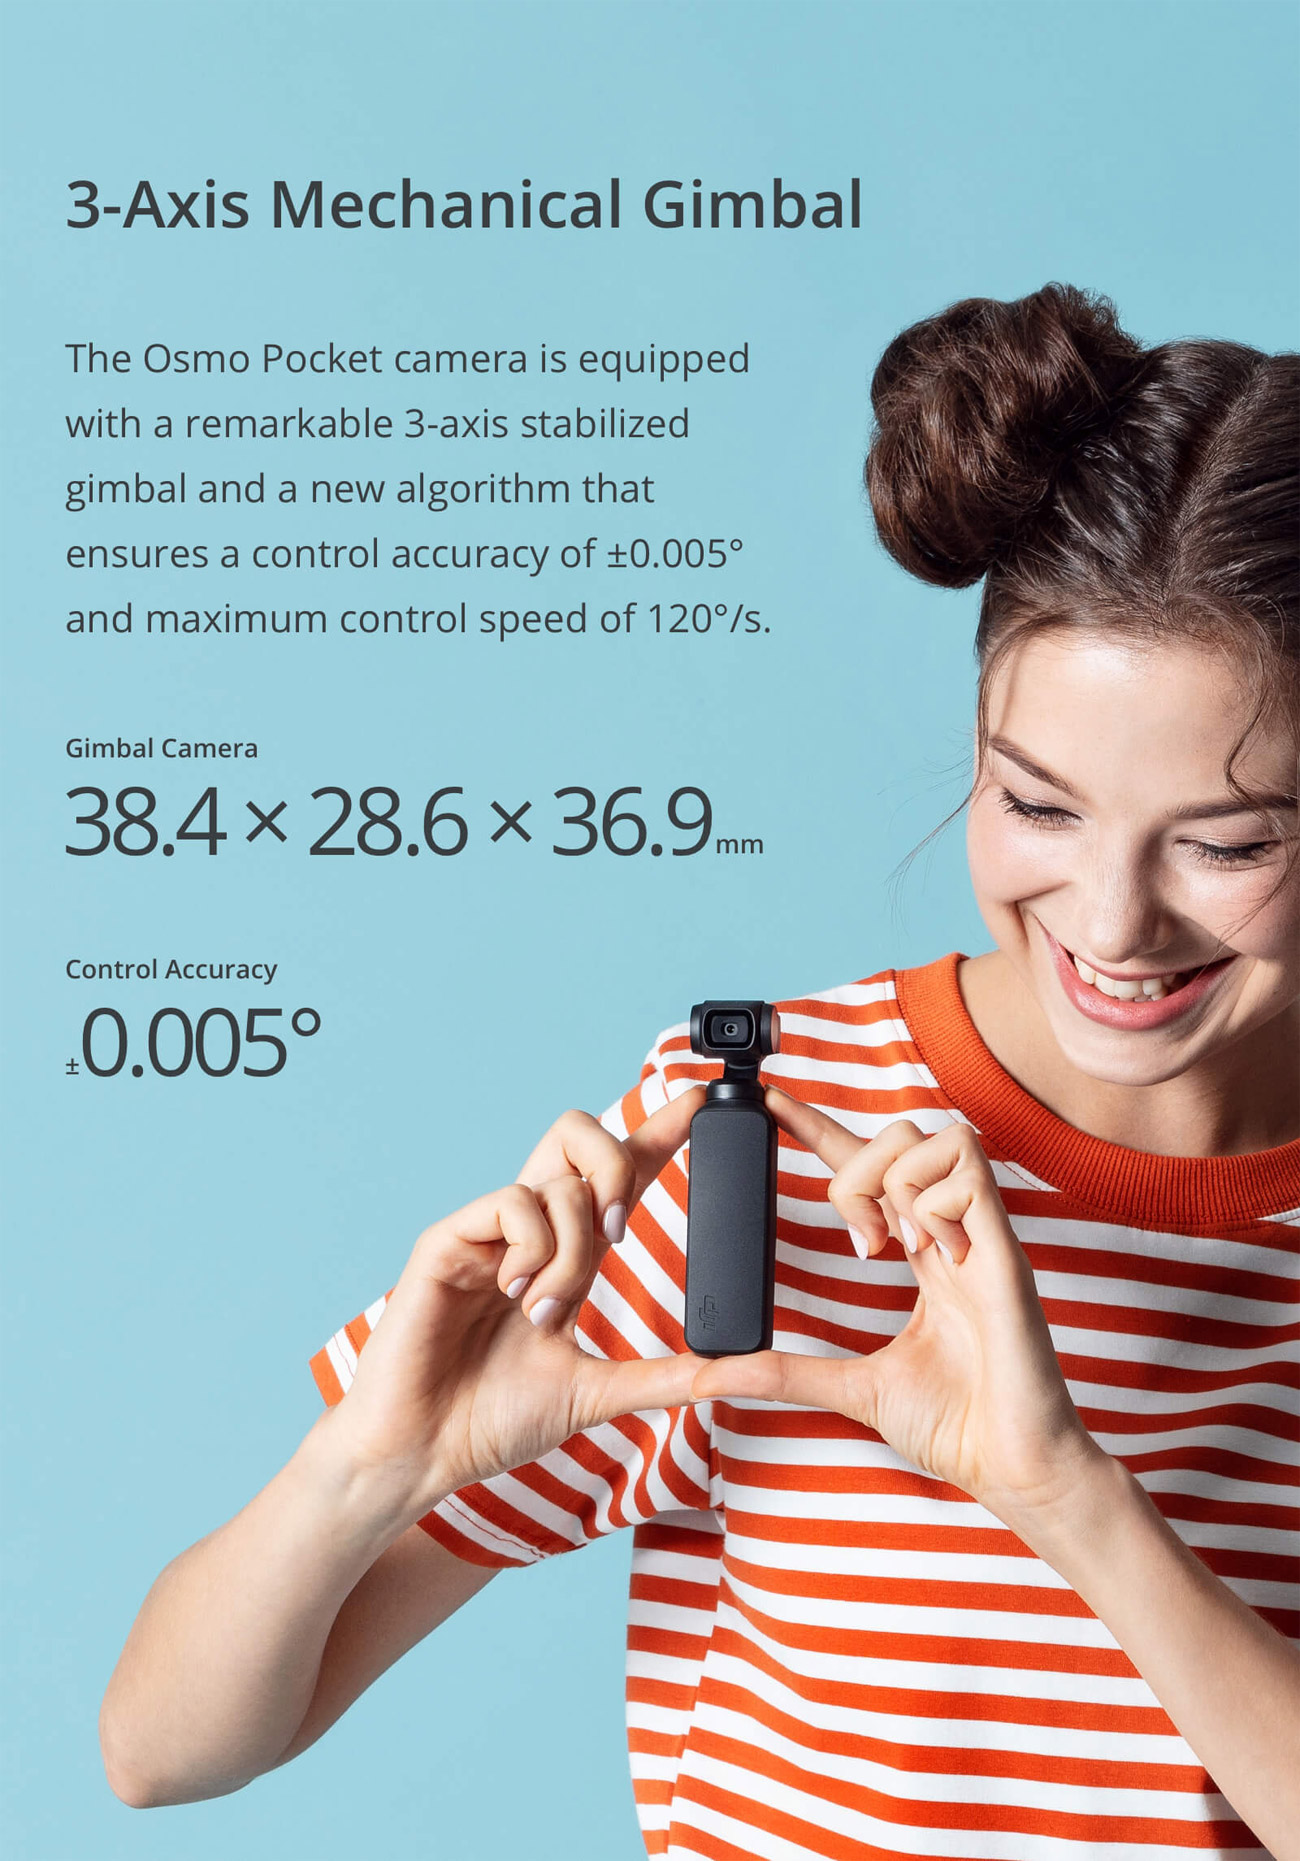 Osmo Pocket 3-Axis Mechanical Gimbal Banner showing a girl holding the product between her fingers with text that reads: The Osmo Pocket camera is equipped with a remarkable 3-axis stabilized gimbal and a new algorithm that ensures a control accuracy of plus-or-minus 0.005 degrees and maximum control of speed of 120 degrees a second.